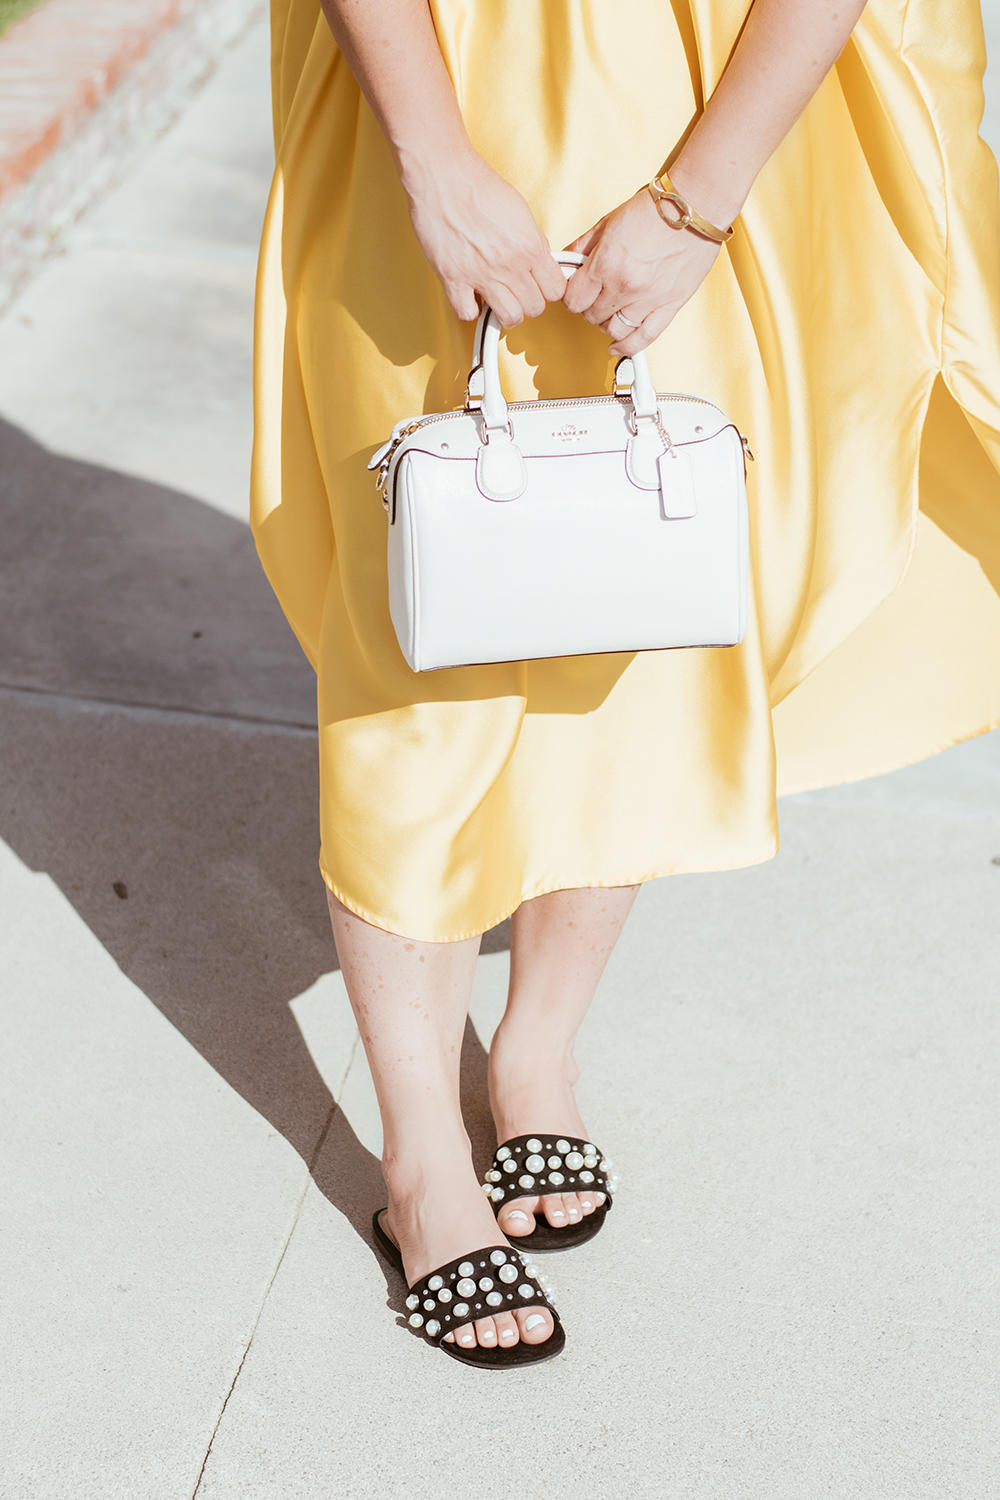 The Best Yellow Dresses for Summer The Biggest Trends for 2018 Barefoot in LA Fashion Blog Style Ideas Outfits 0164